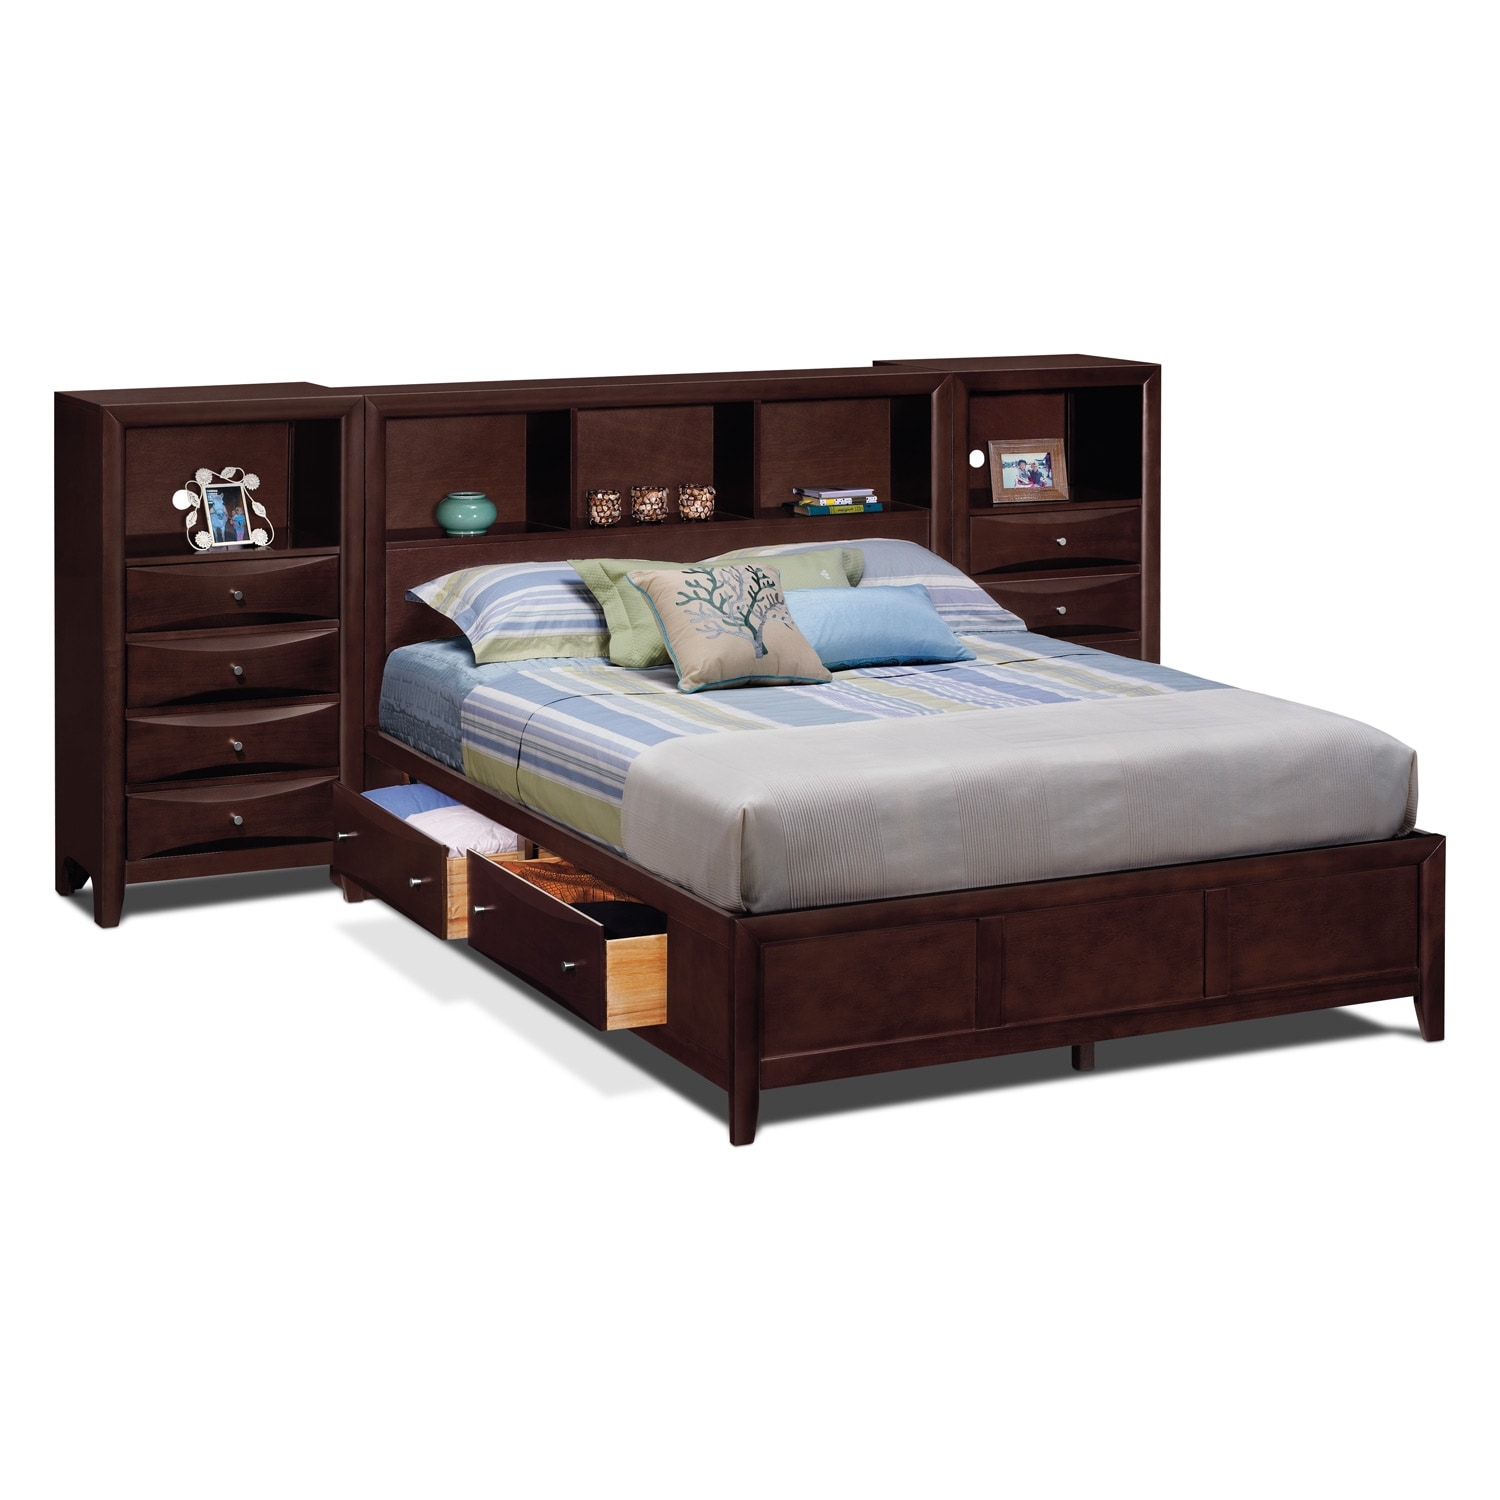 Kensington bedroom queen wall bed with piers for Bedroom furniture beds